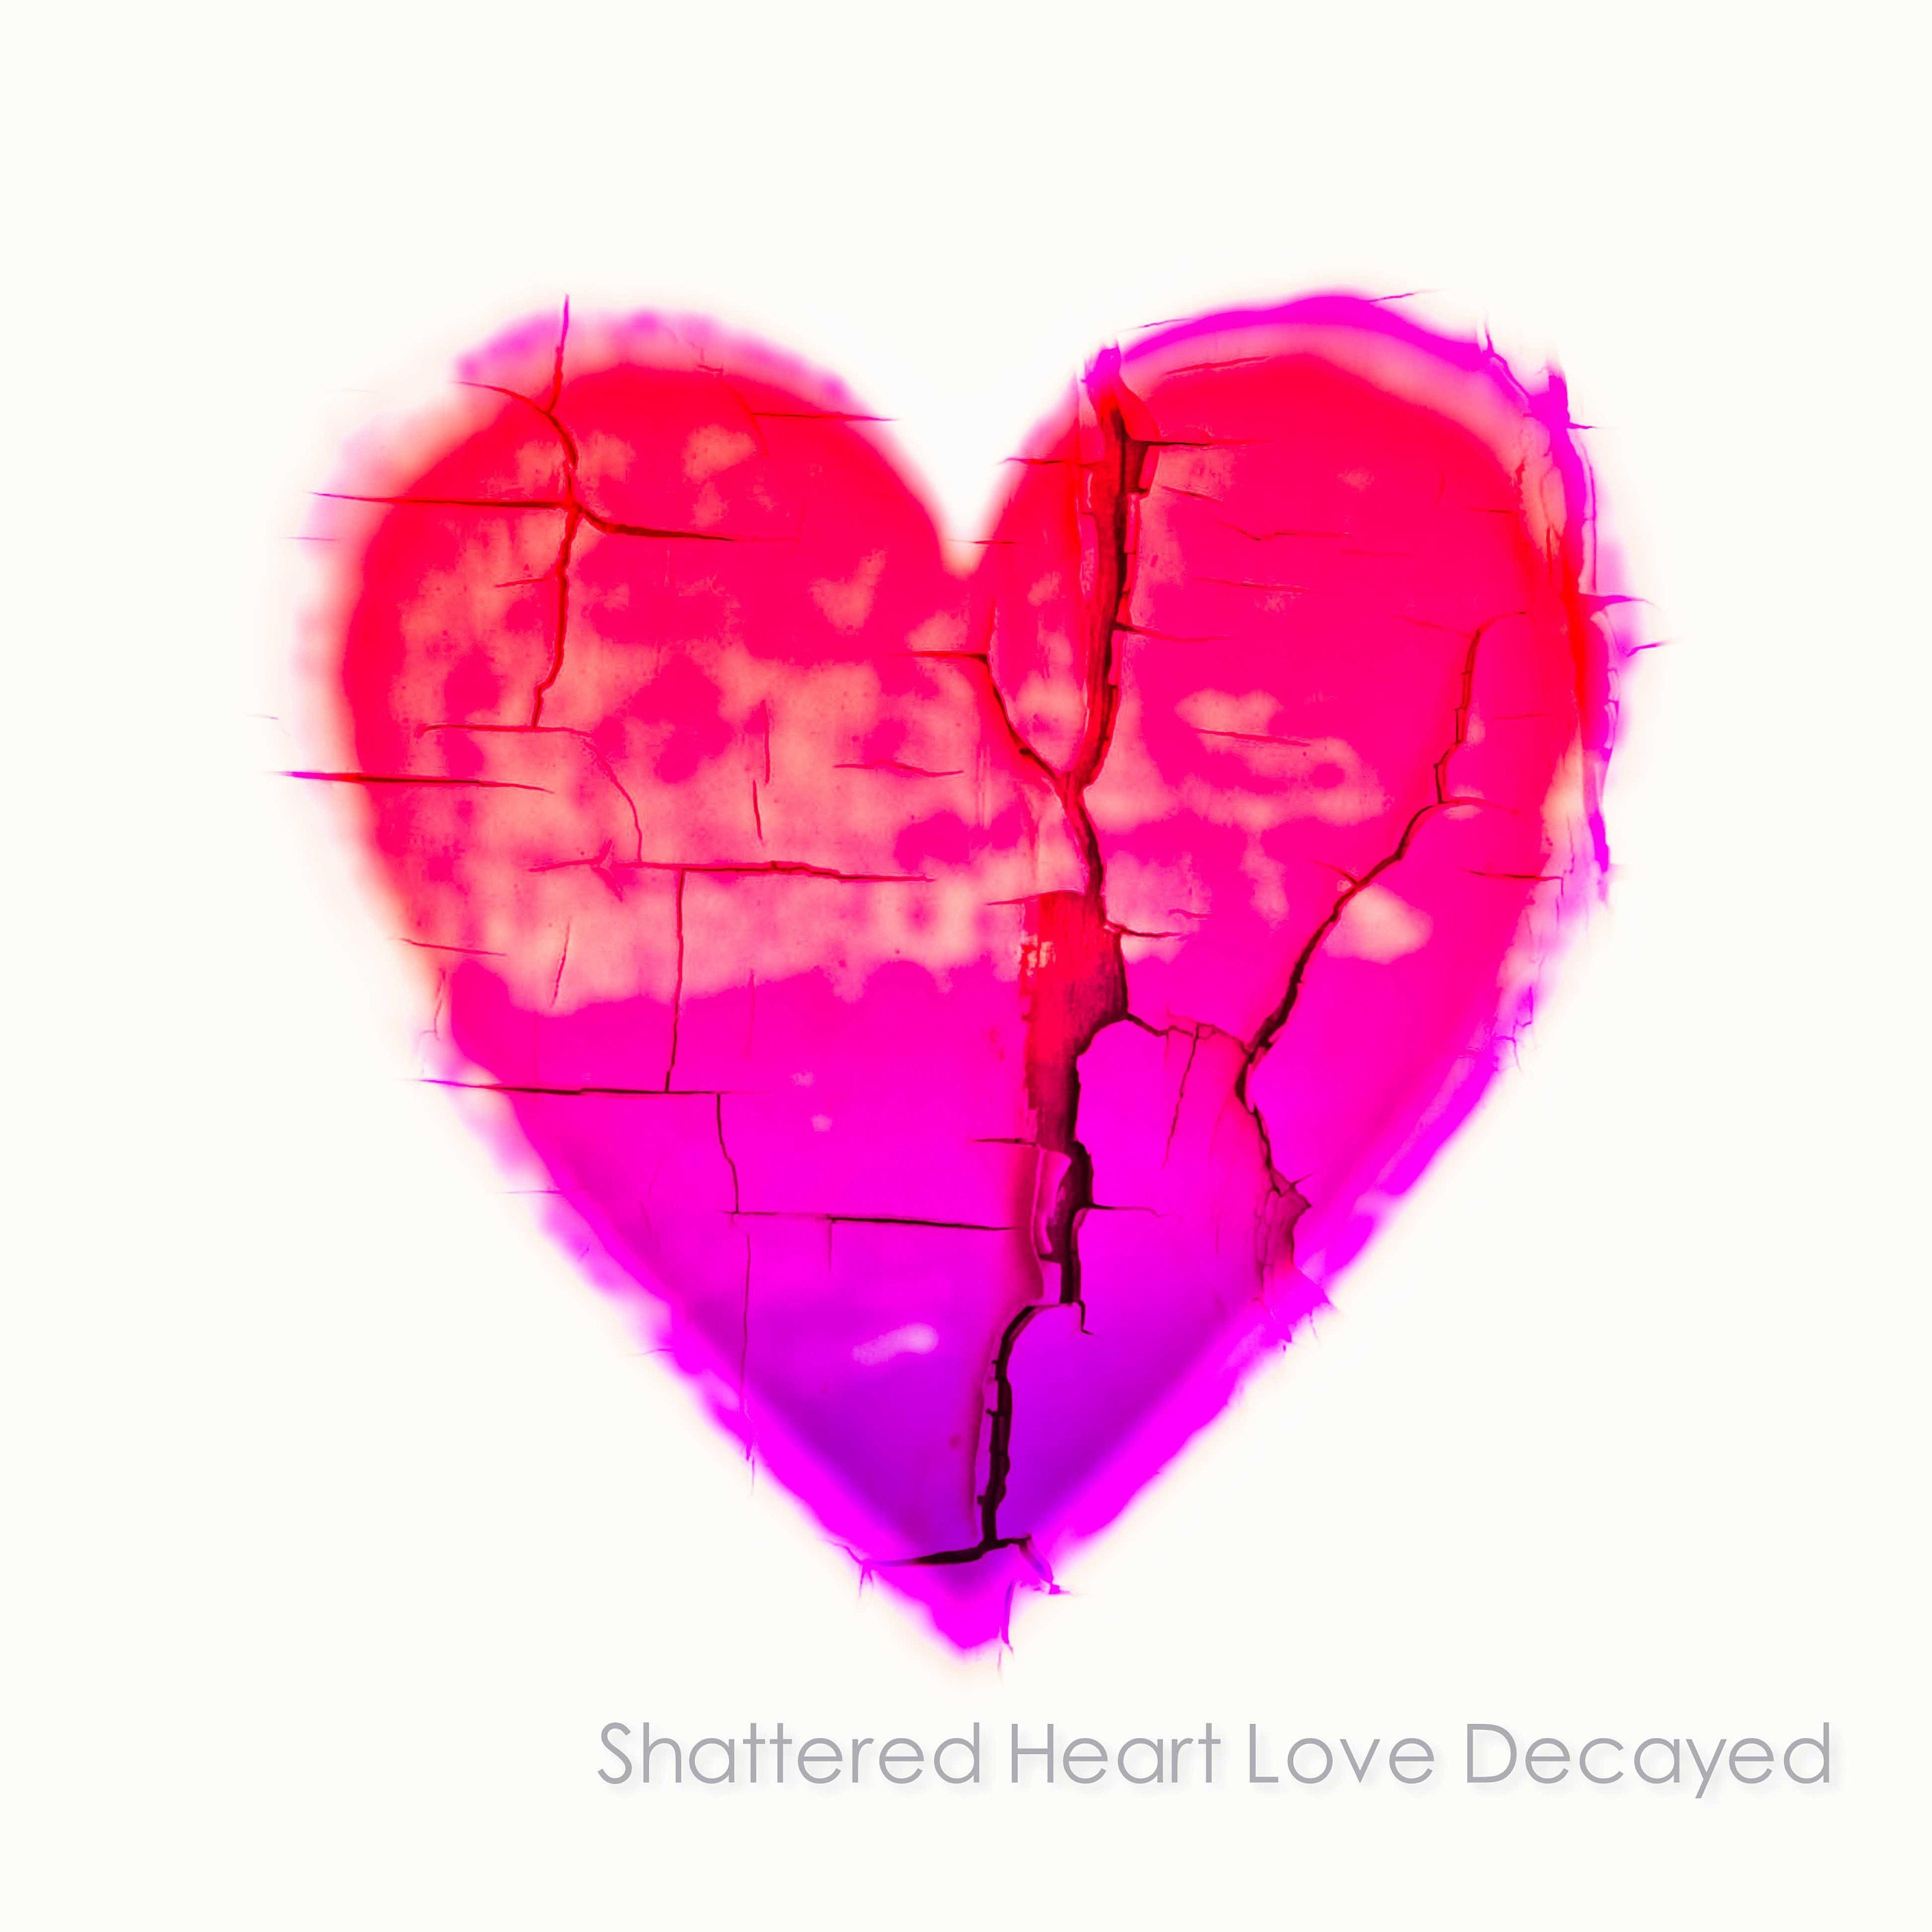 pink and red heart on white background- unframed limited edition prints and ready to hang wall art- the heart has textures of crumbling peeling paint